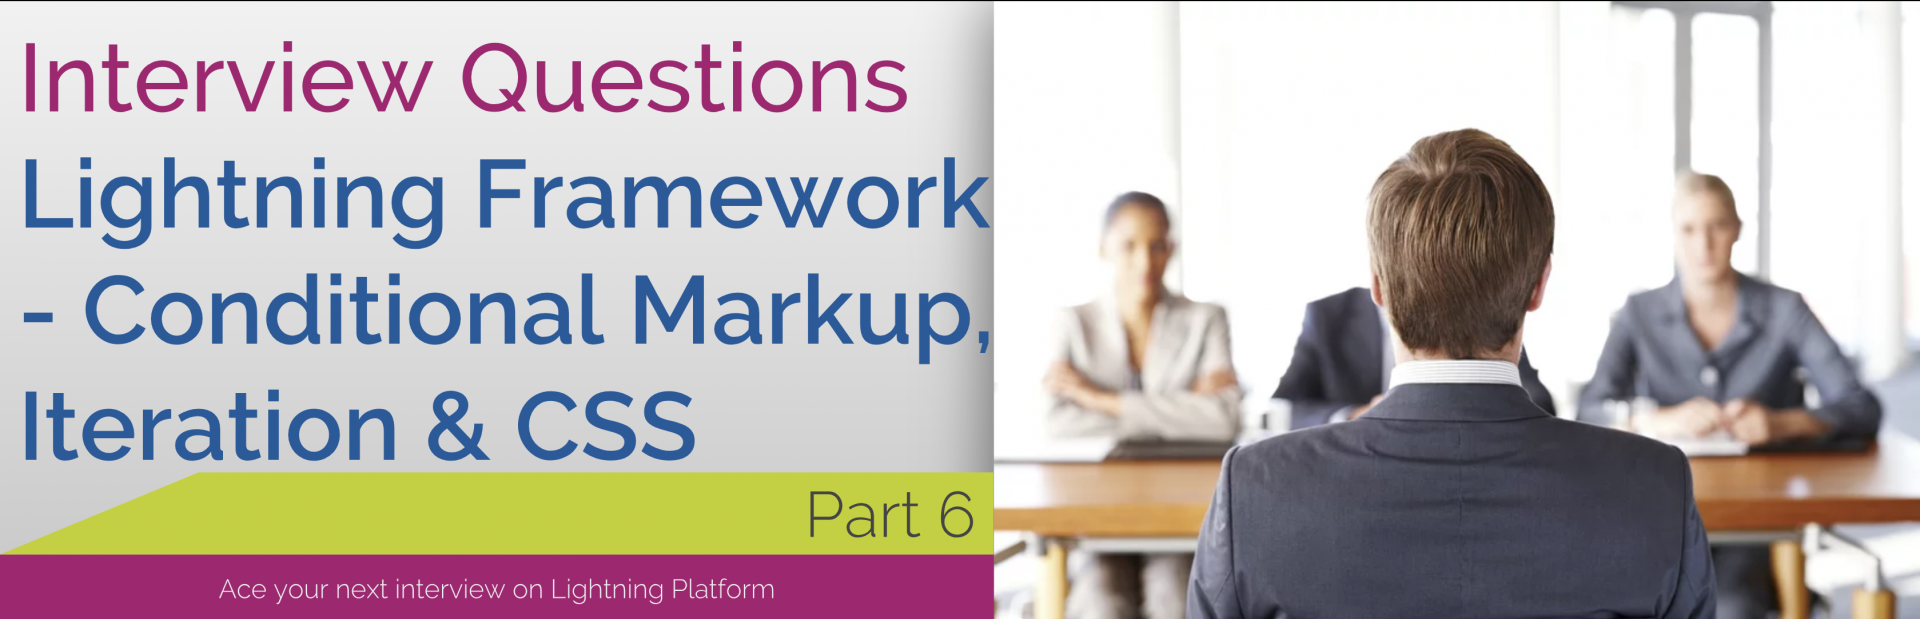 Interview Questions – Lightning Framework – Part 6 – Conditional Markup, Iteration & CSS